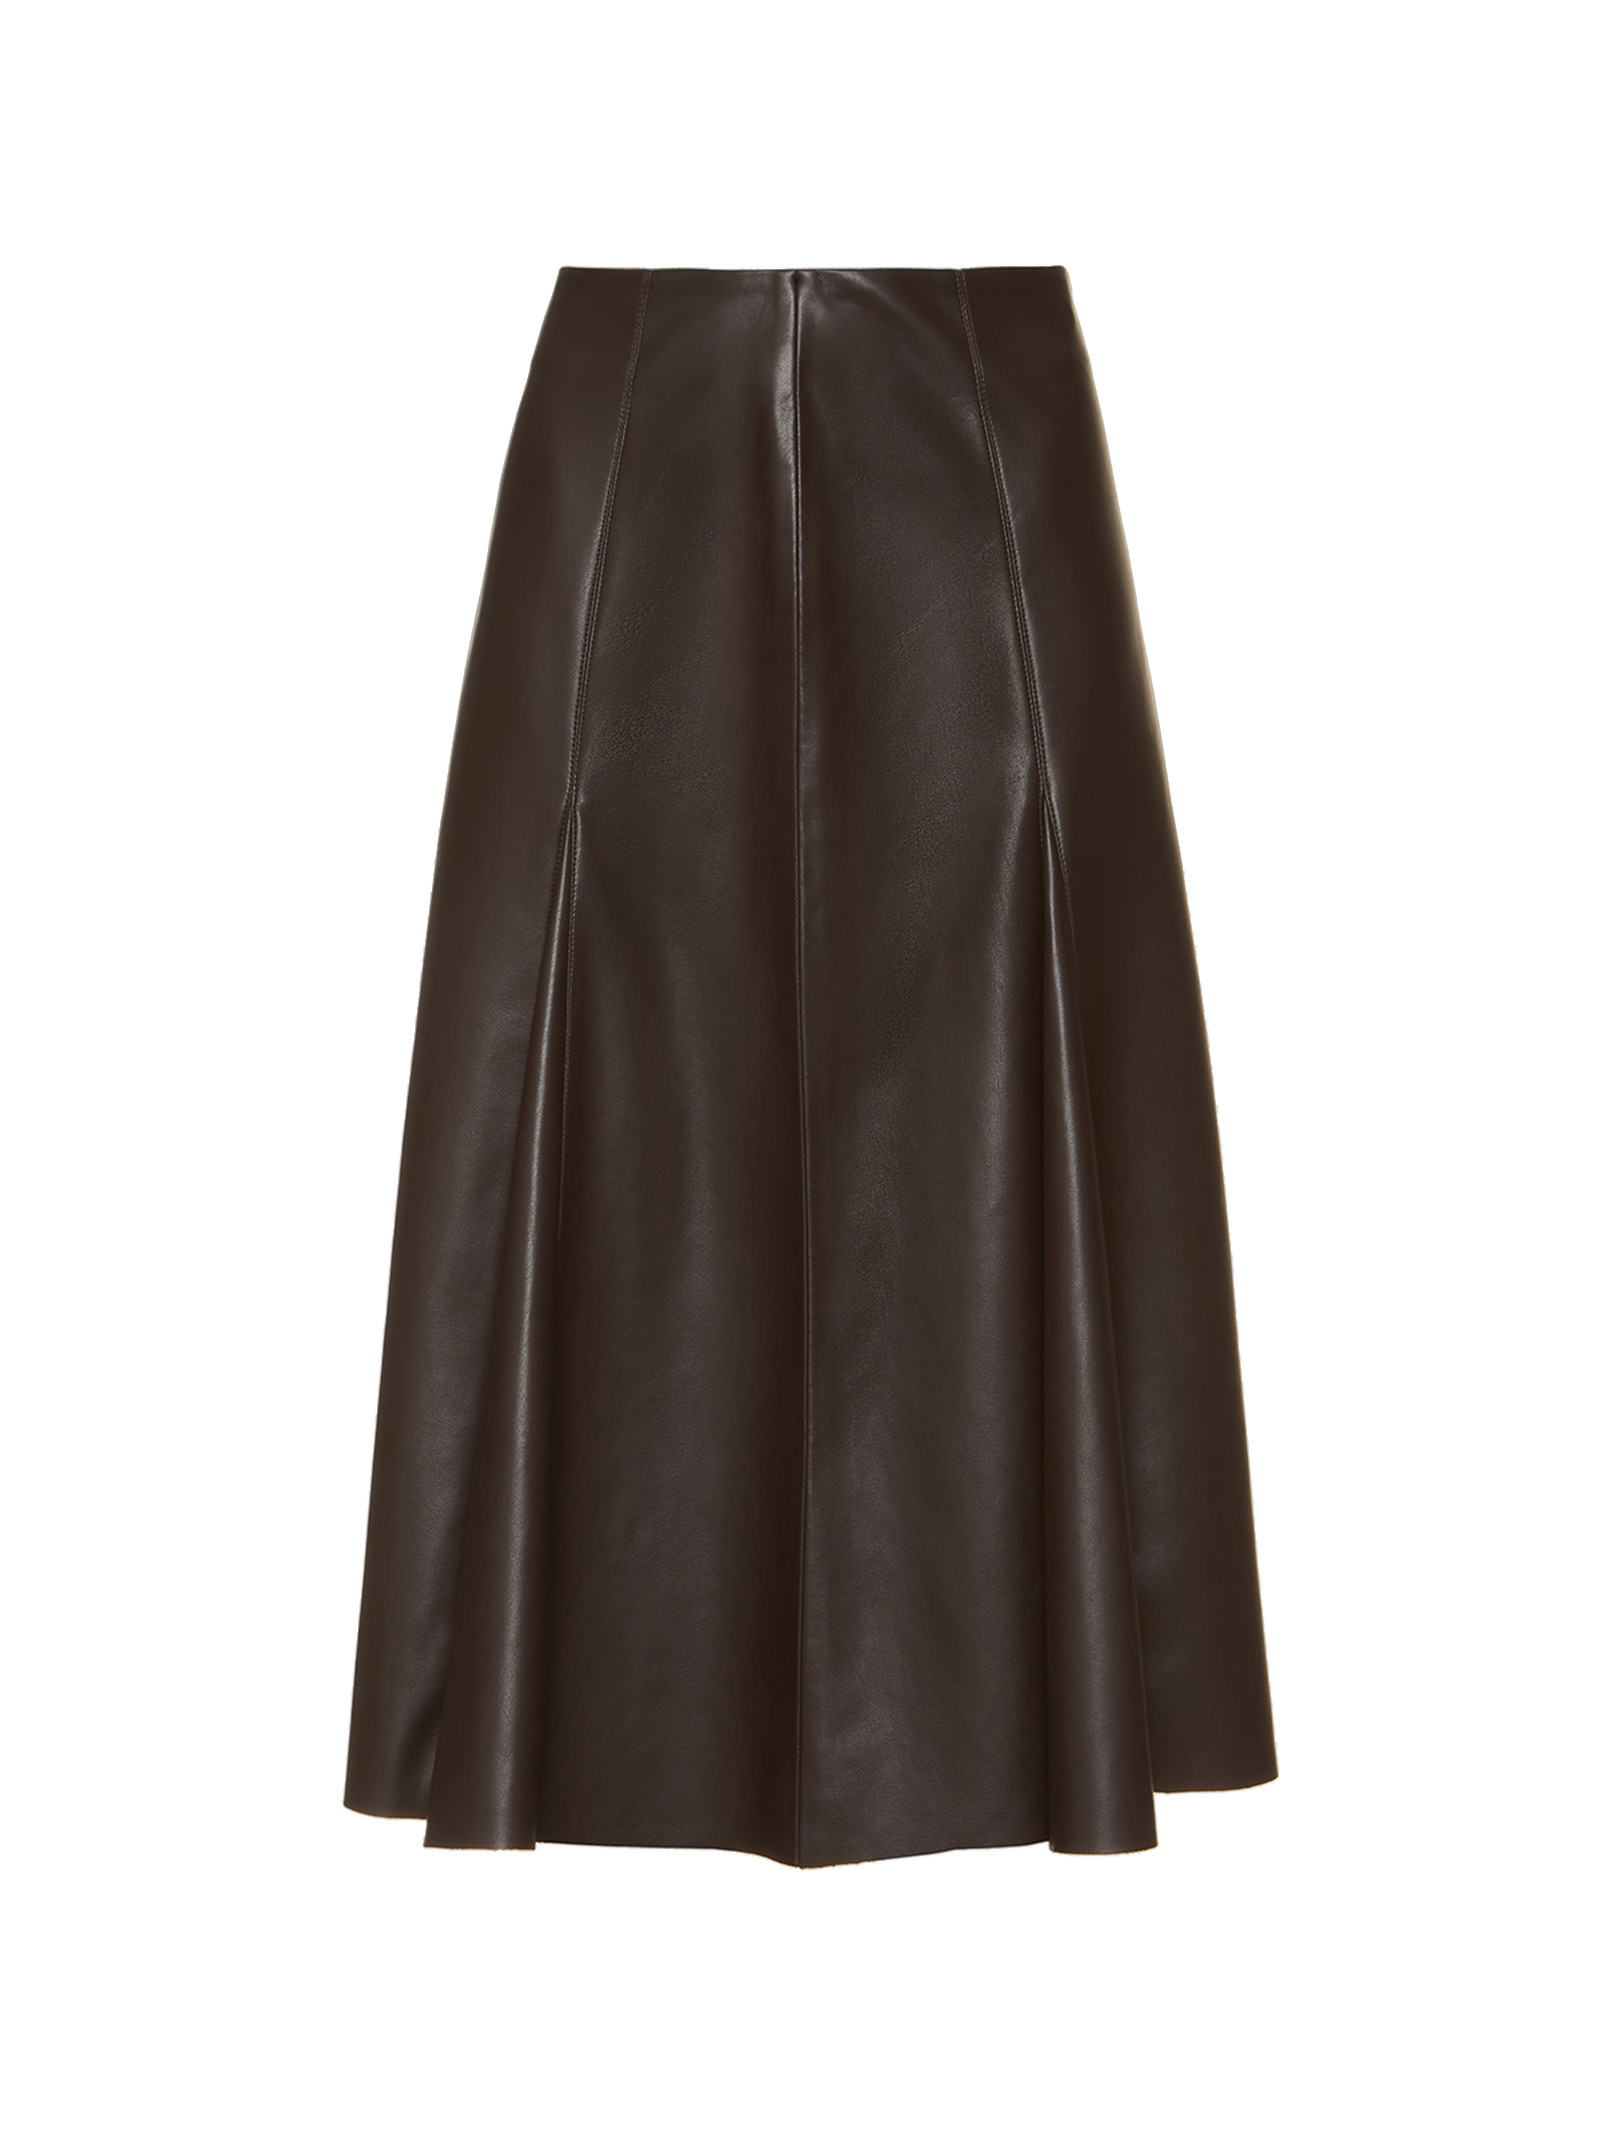 Women's Clothing Knee High Leather Skirt in Brown Eco-leather Maliparmi | Skirts and Pants | JG36275056940007